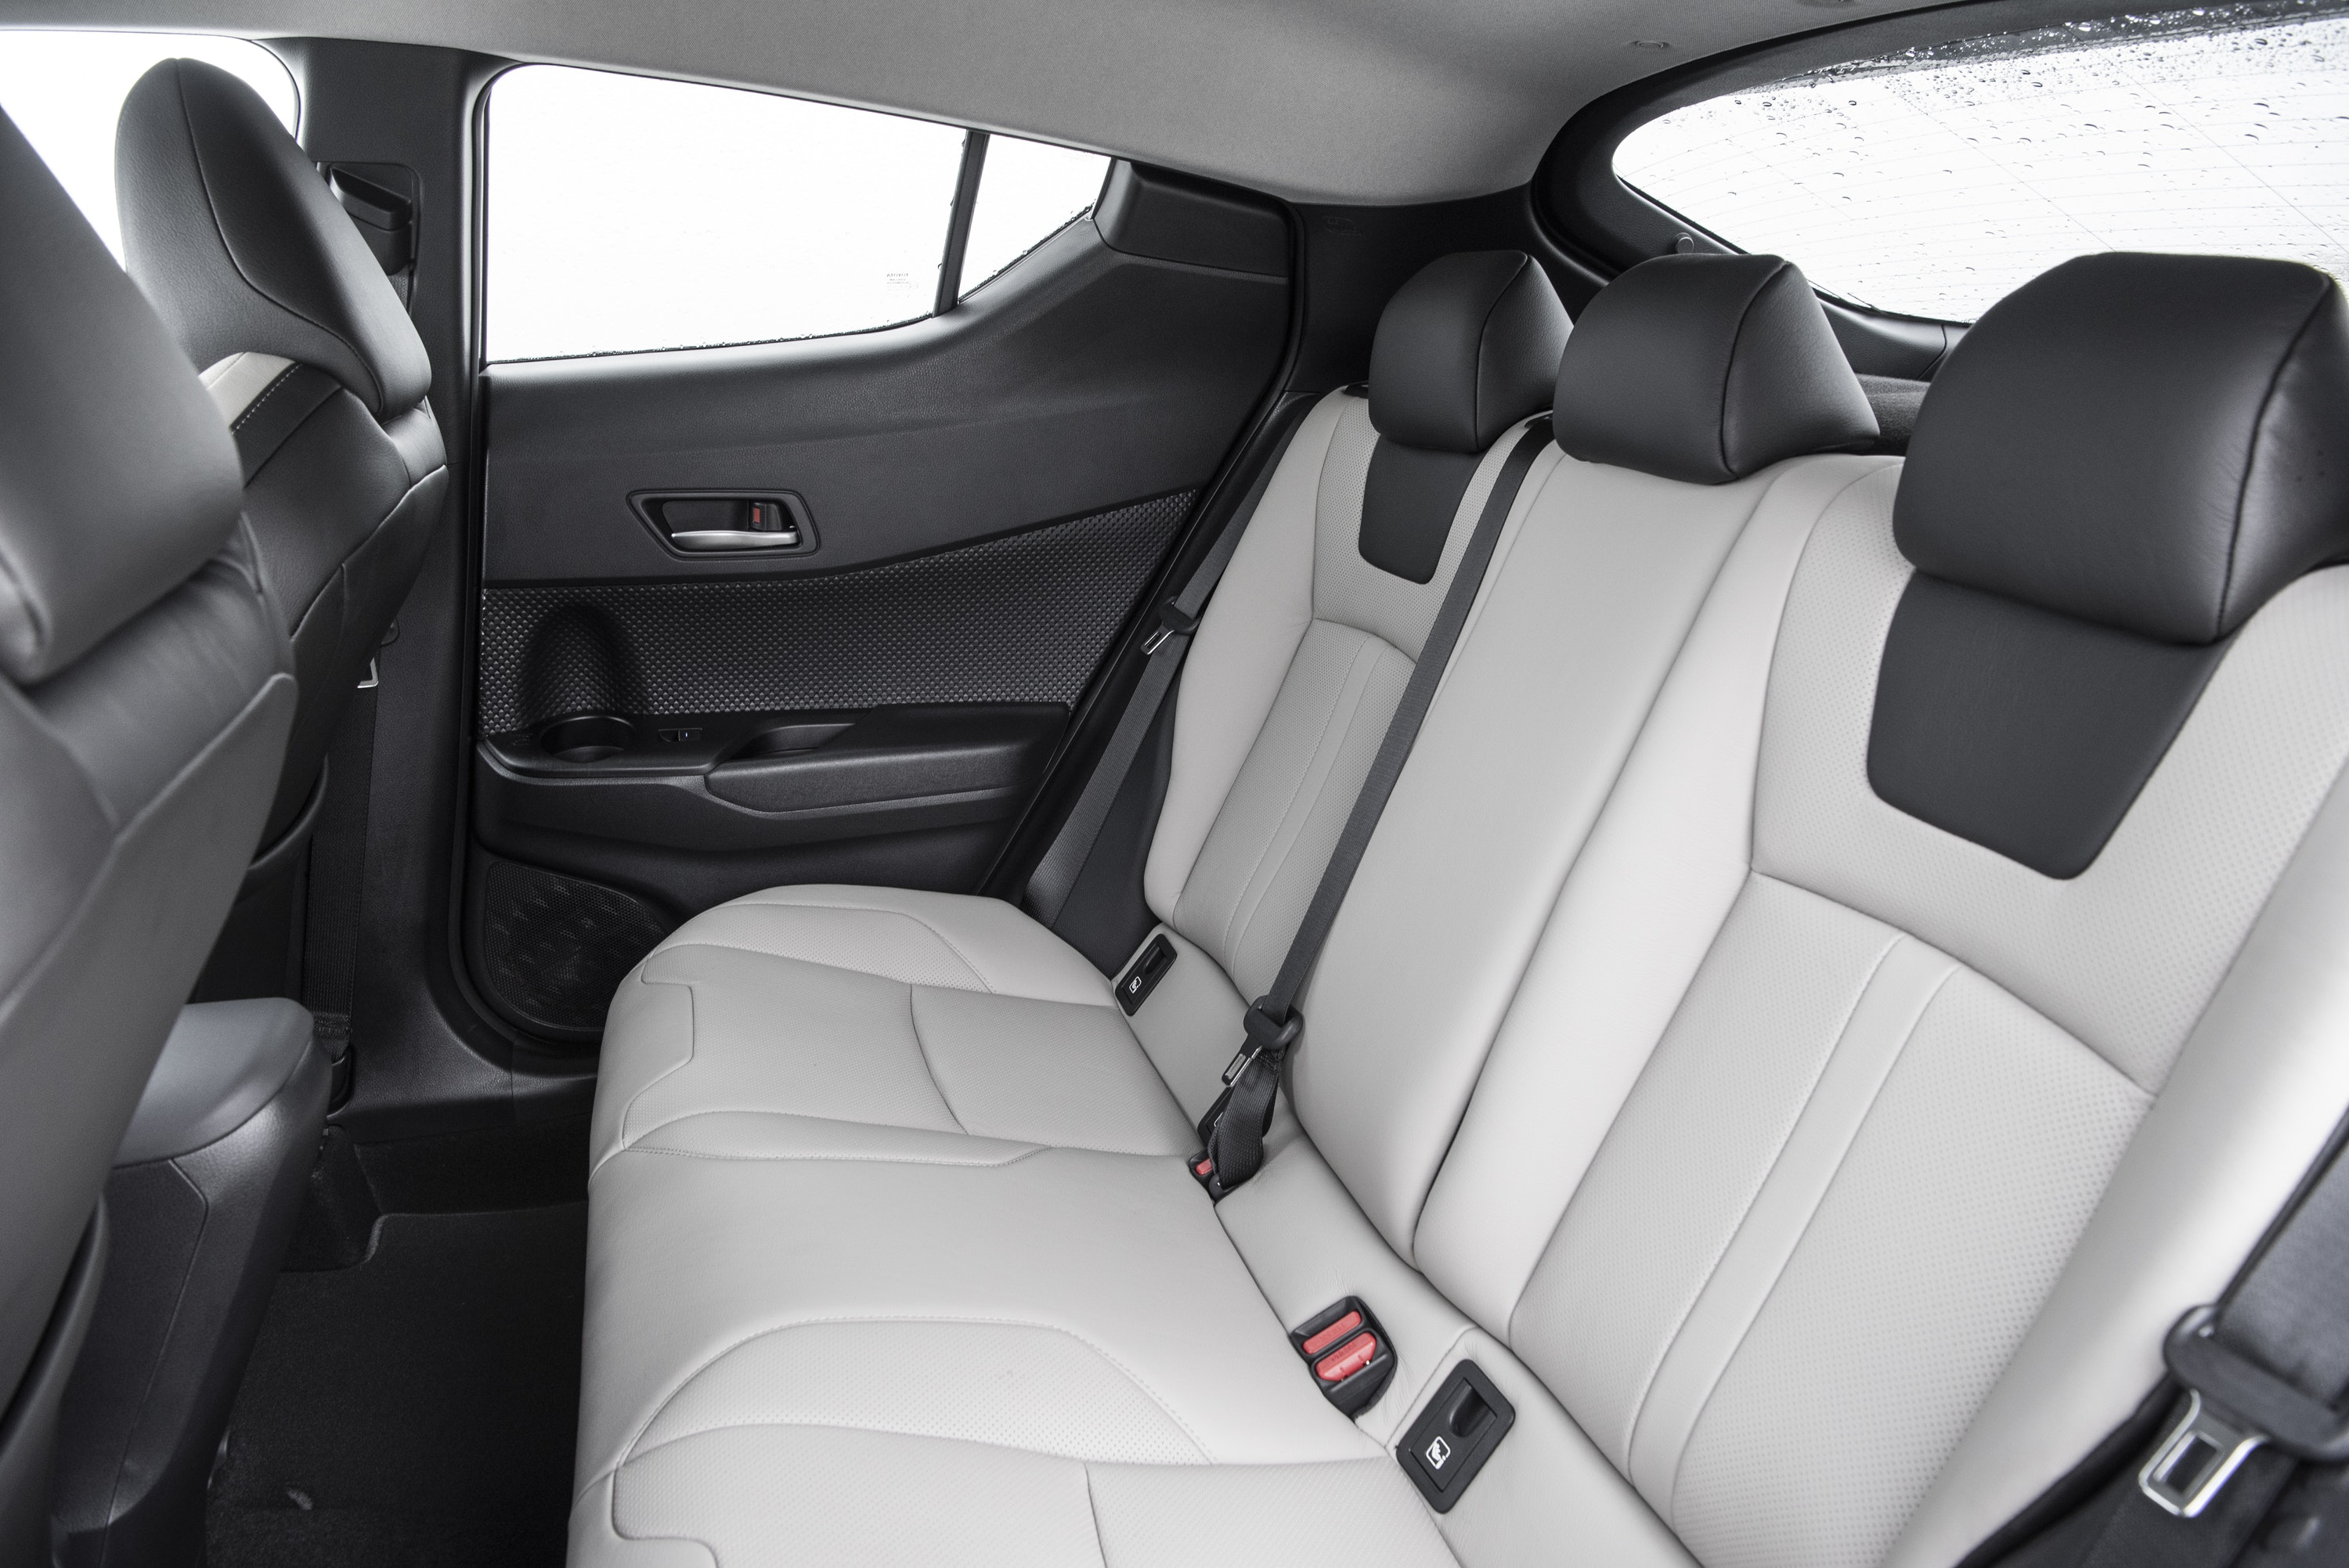 Rear seating of Toyota C-HR